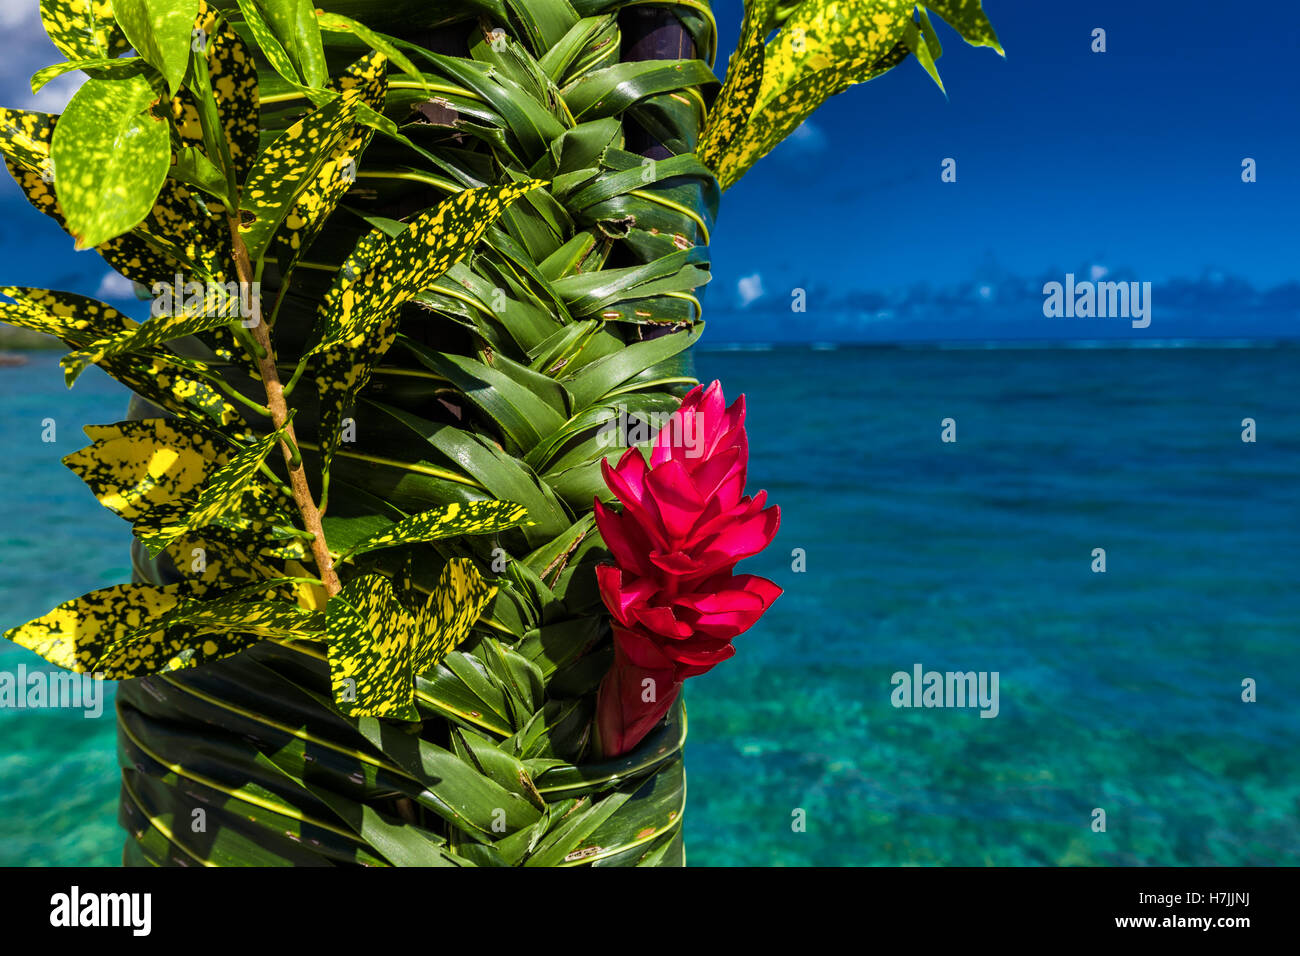 Teuila red flower used for wedding decoration agains beach on samoa teuila red flower used for wedding decoration agains beach on samoa islands junglespirit Choice Image